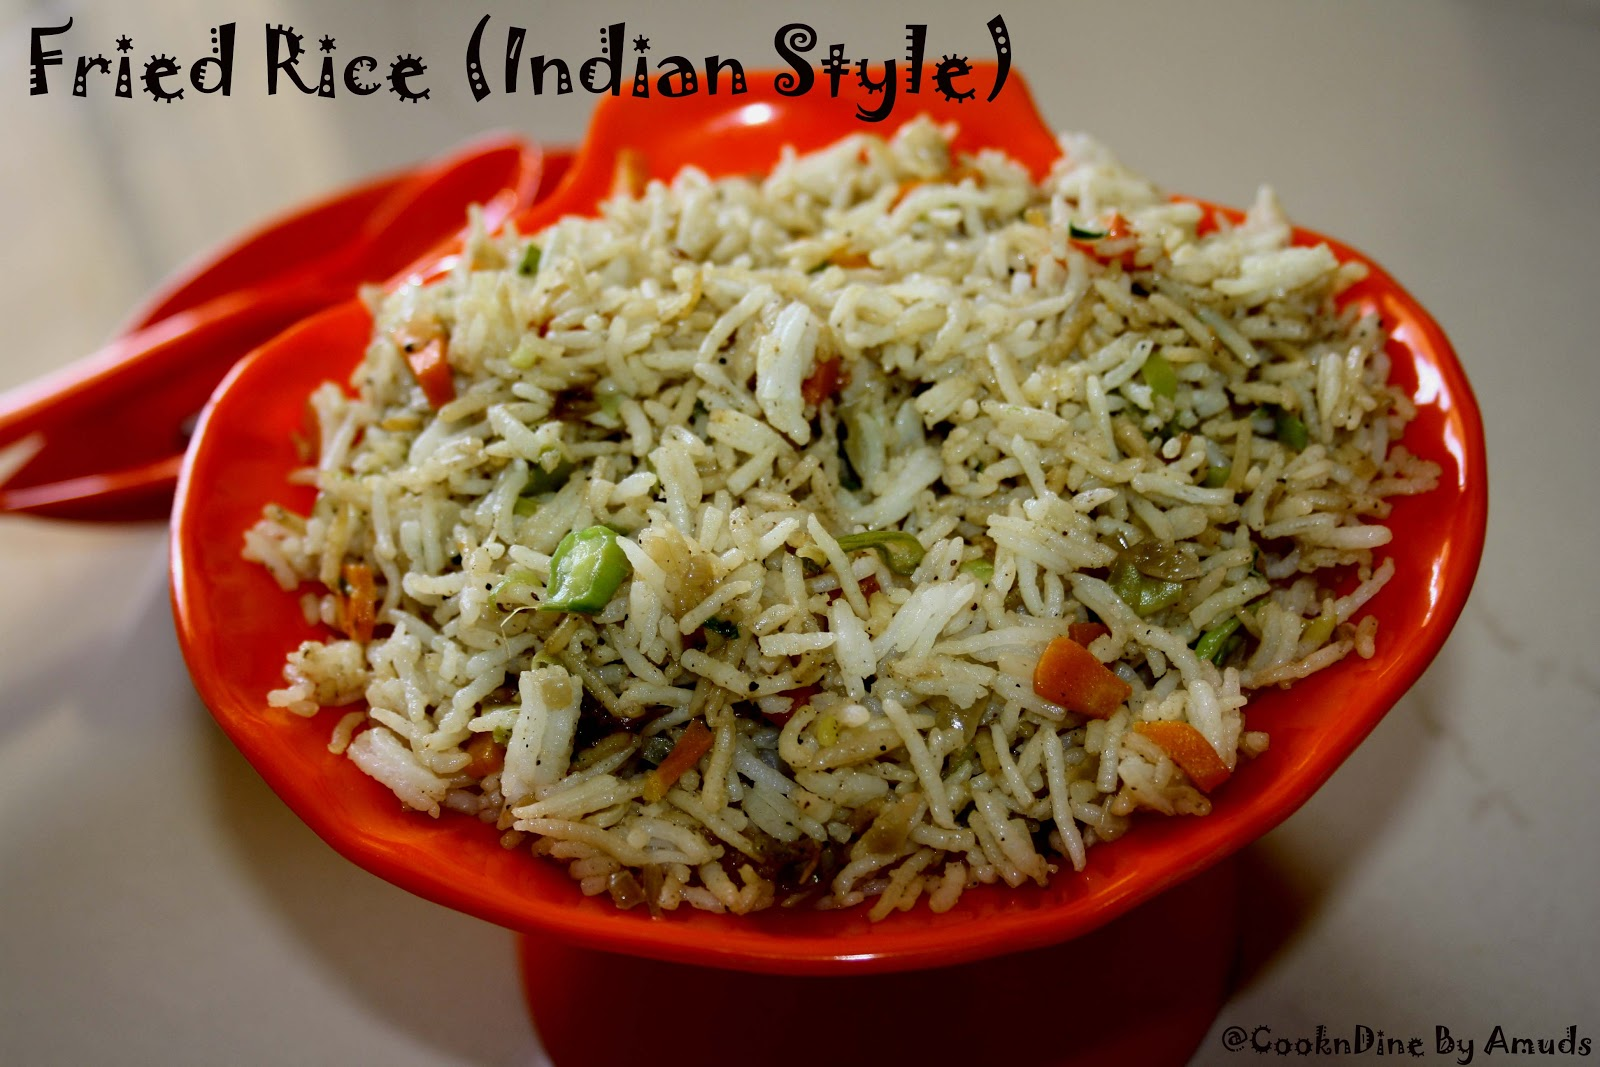 CooknDine....: Vegetable Fried Rice (Indian Style)